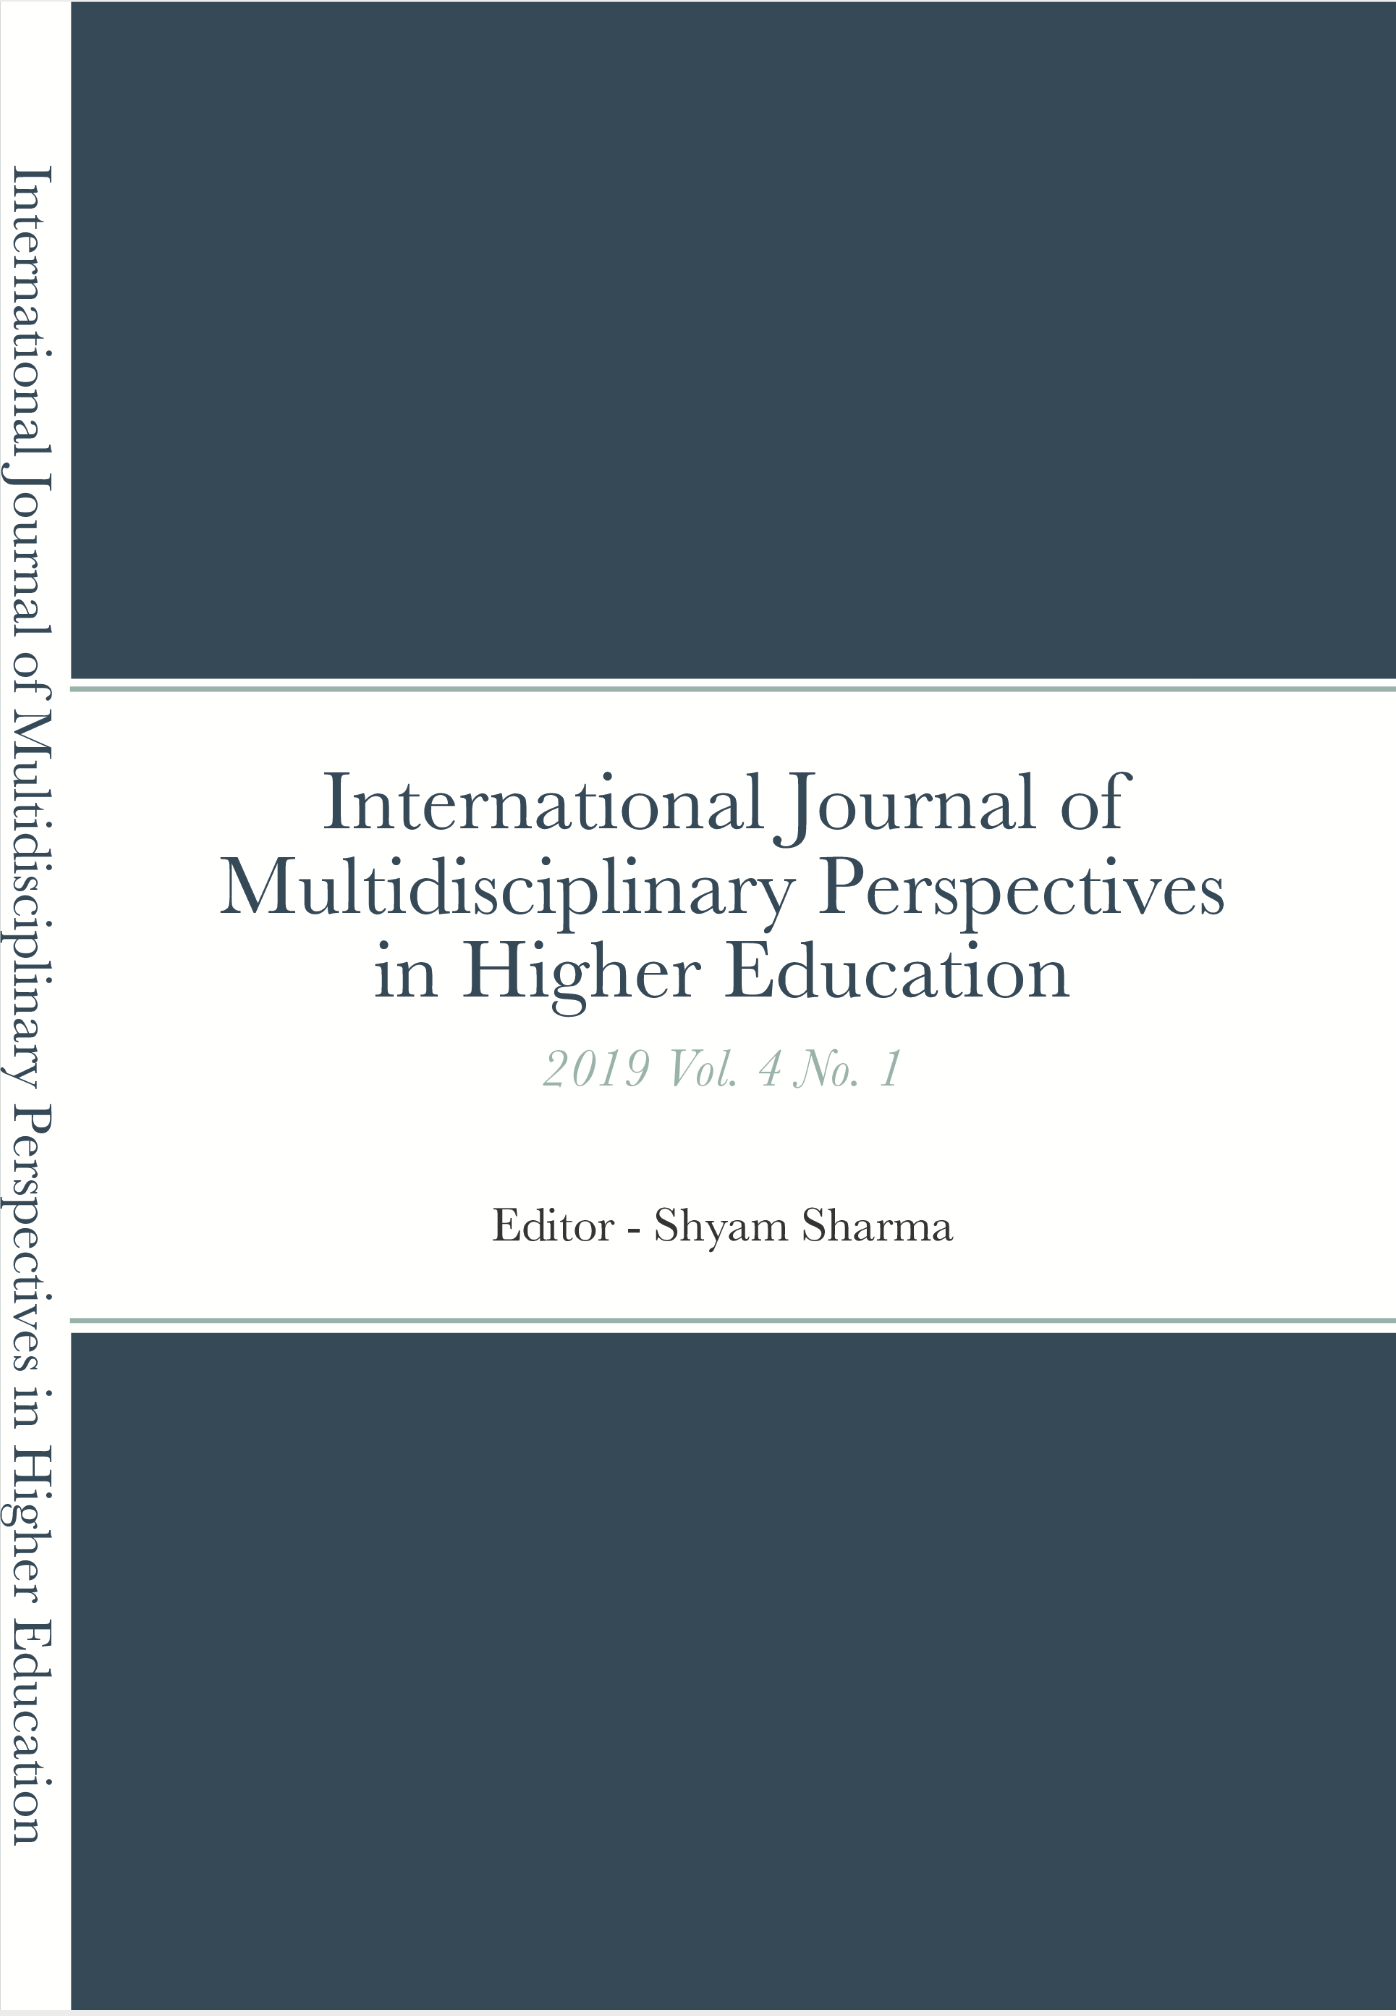 The International Journal of Multidisciplinary Perspectives in Higher Education (Print ISSN 2474-2546 & Online ISSN 2474-2554) is a double-blind peer-reviewed scholarly journal that seeks to create conversations about education—especially the policy, practice, and research on teaching and learning—among scholars across the academic disciplines and across national and cultural borders. www.ojed.org/jimphe